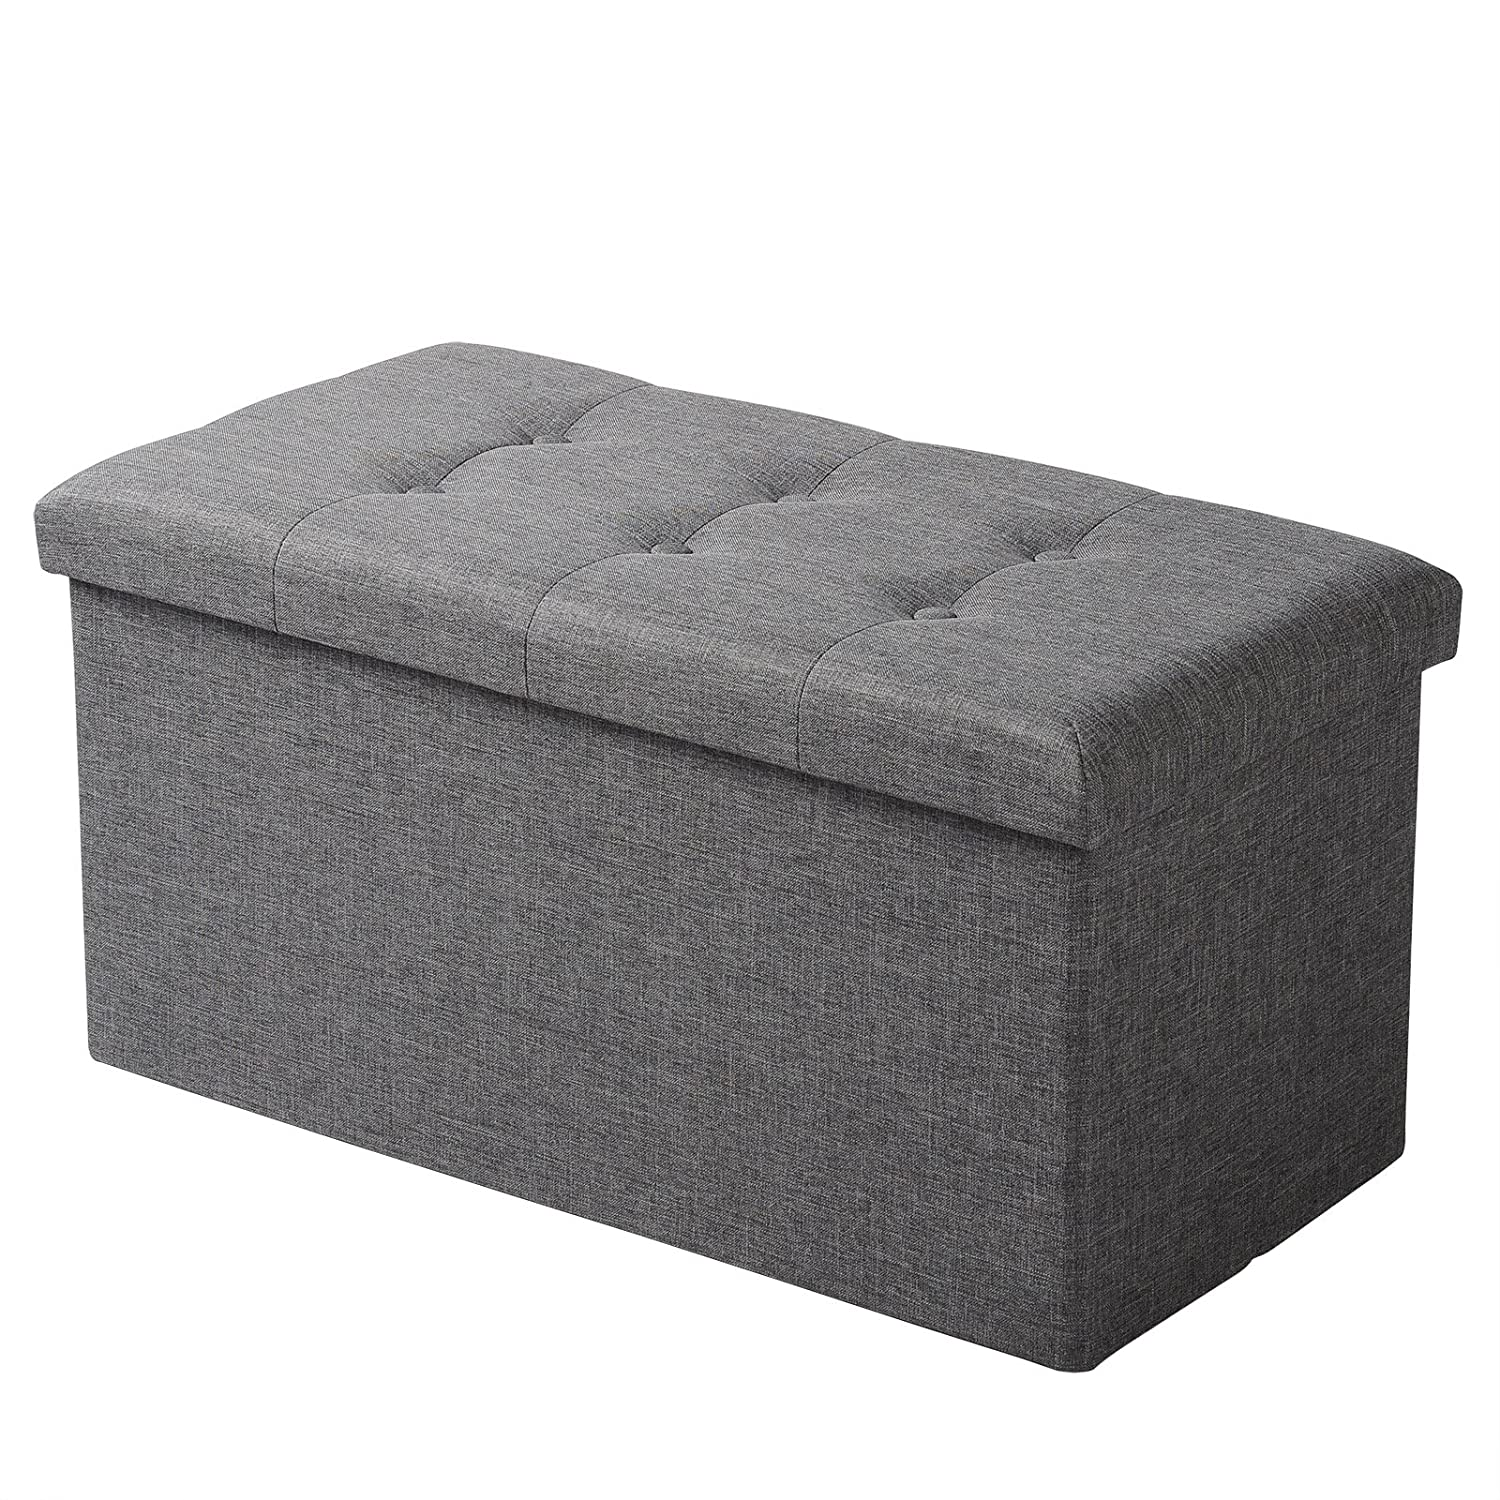 Ottomans Lucia Storage Chest Grey Fabric: WOLTU Large Ottoman Storage Pouffe Linen Fabric Bed Side